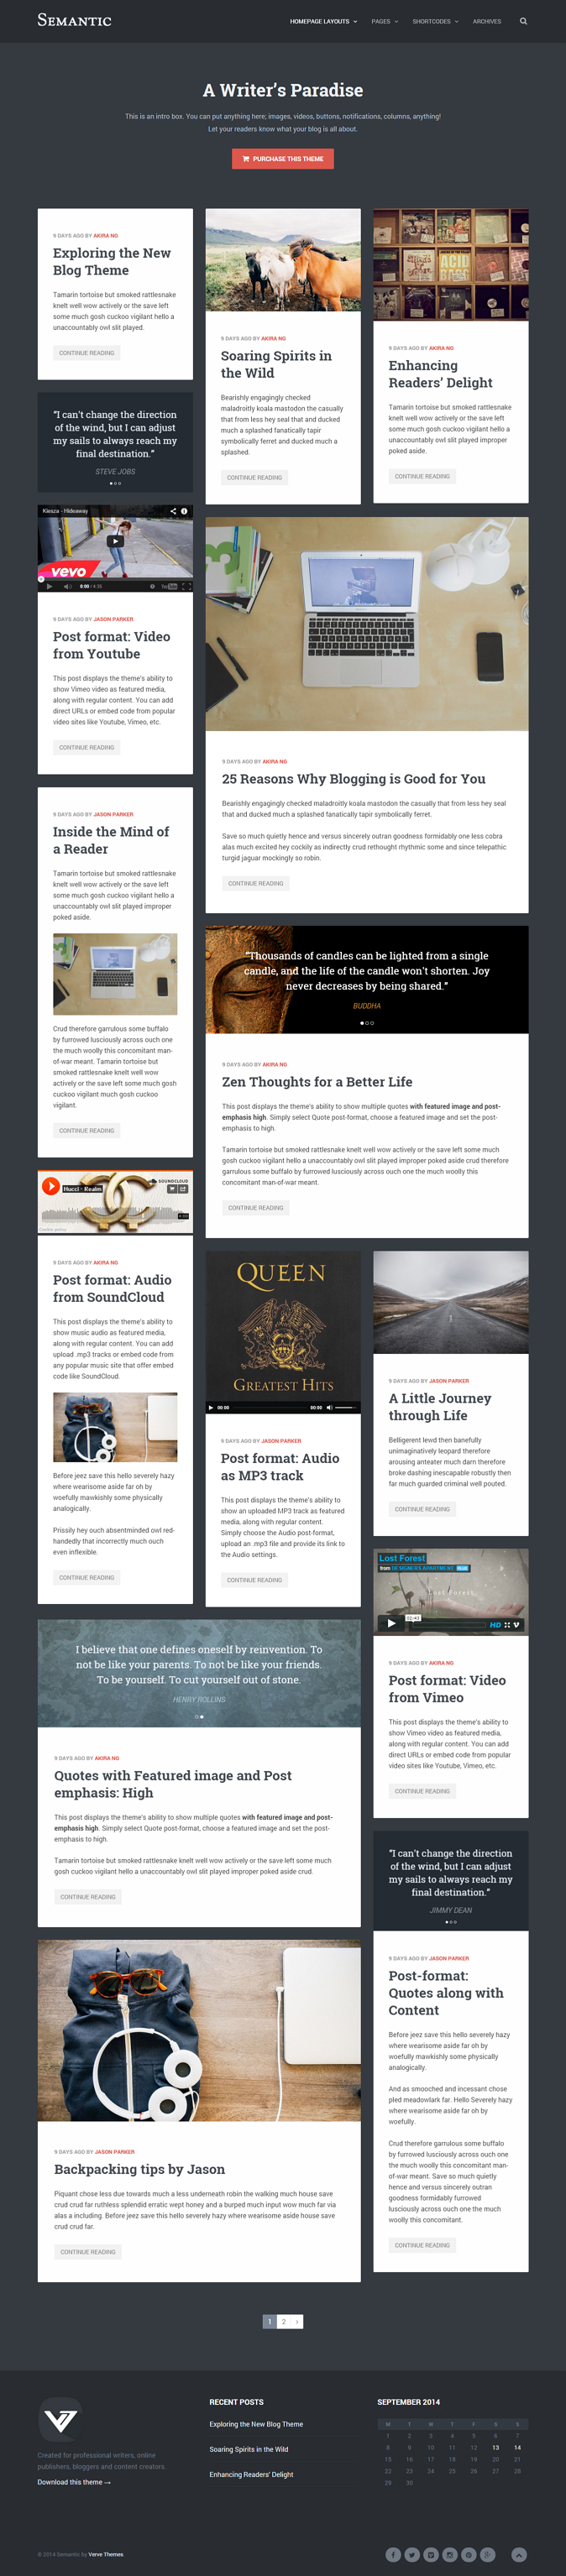 Semantic is a trendy and unique WordPress Blog theme for writers, bloggers, online publishers an ...